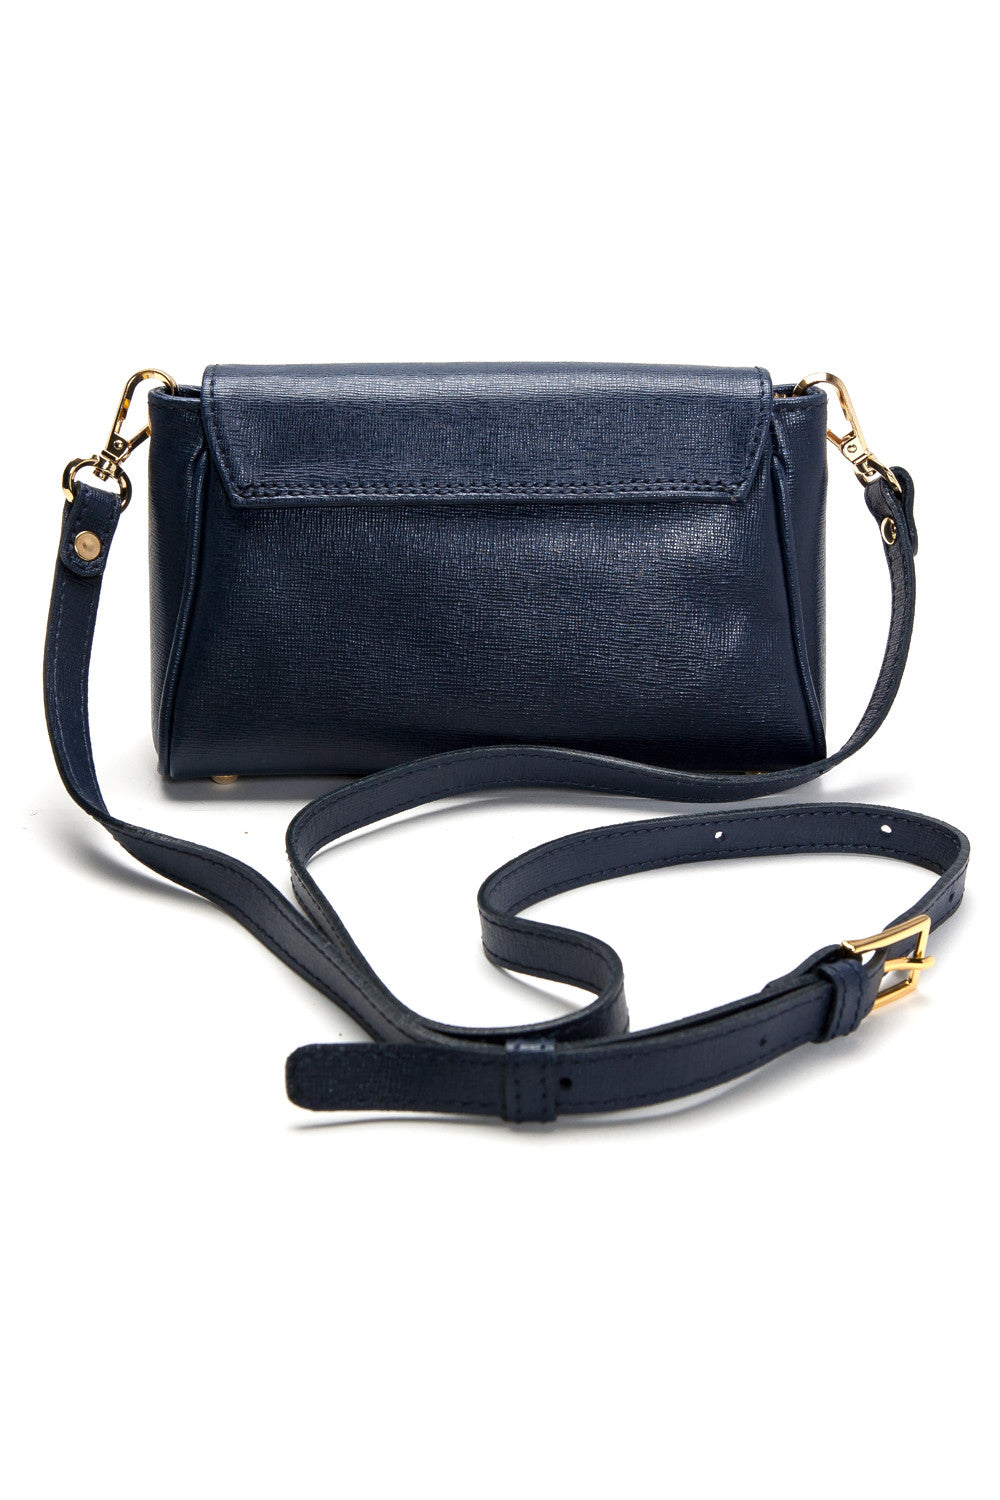 'Emmy' Navy Saffiano Leather Convertible Clutch | Back With Strap View| Mel Boteri Handbags